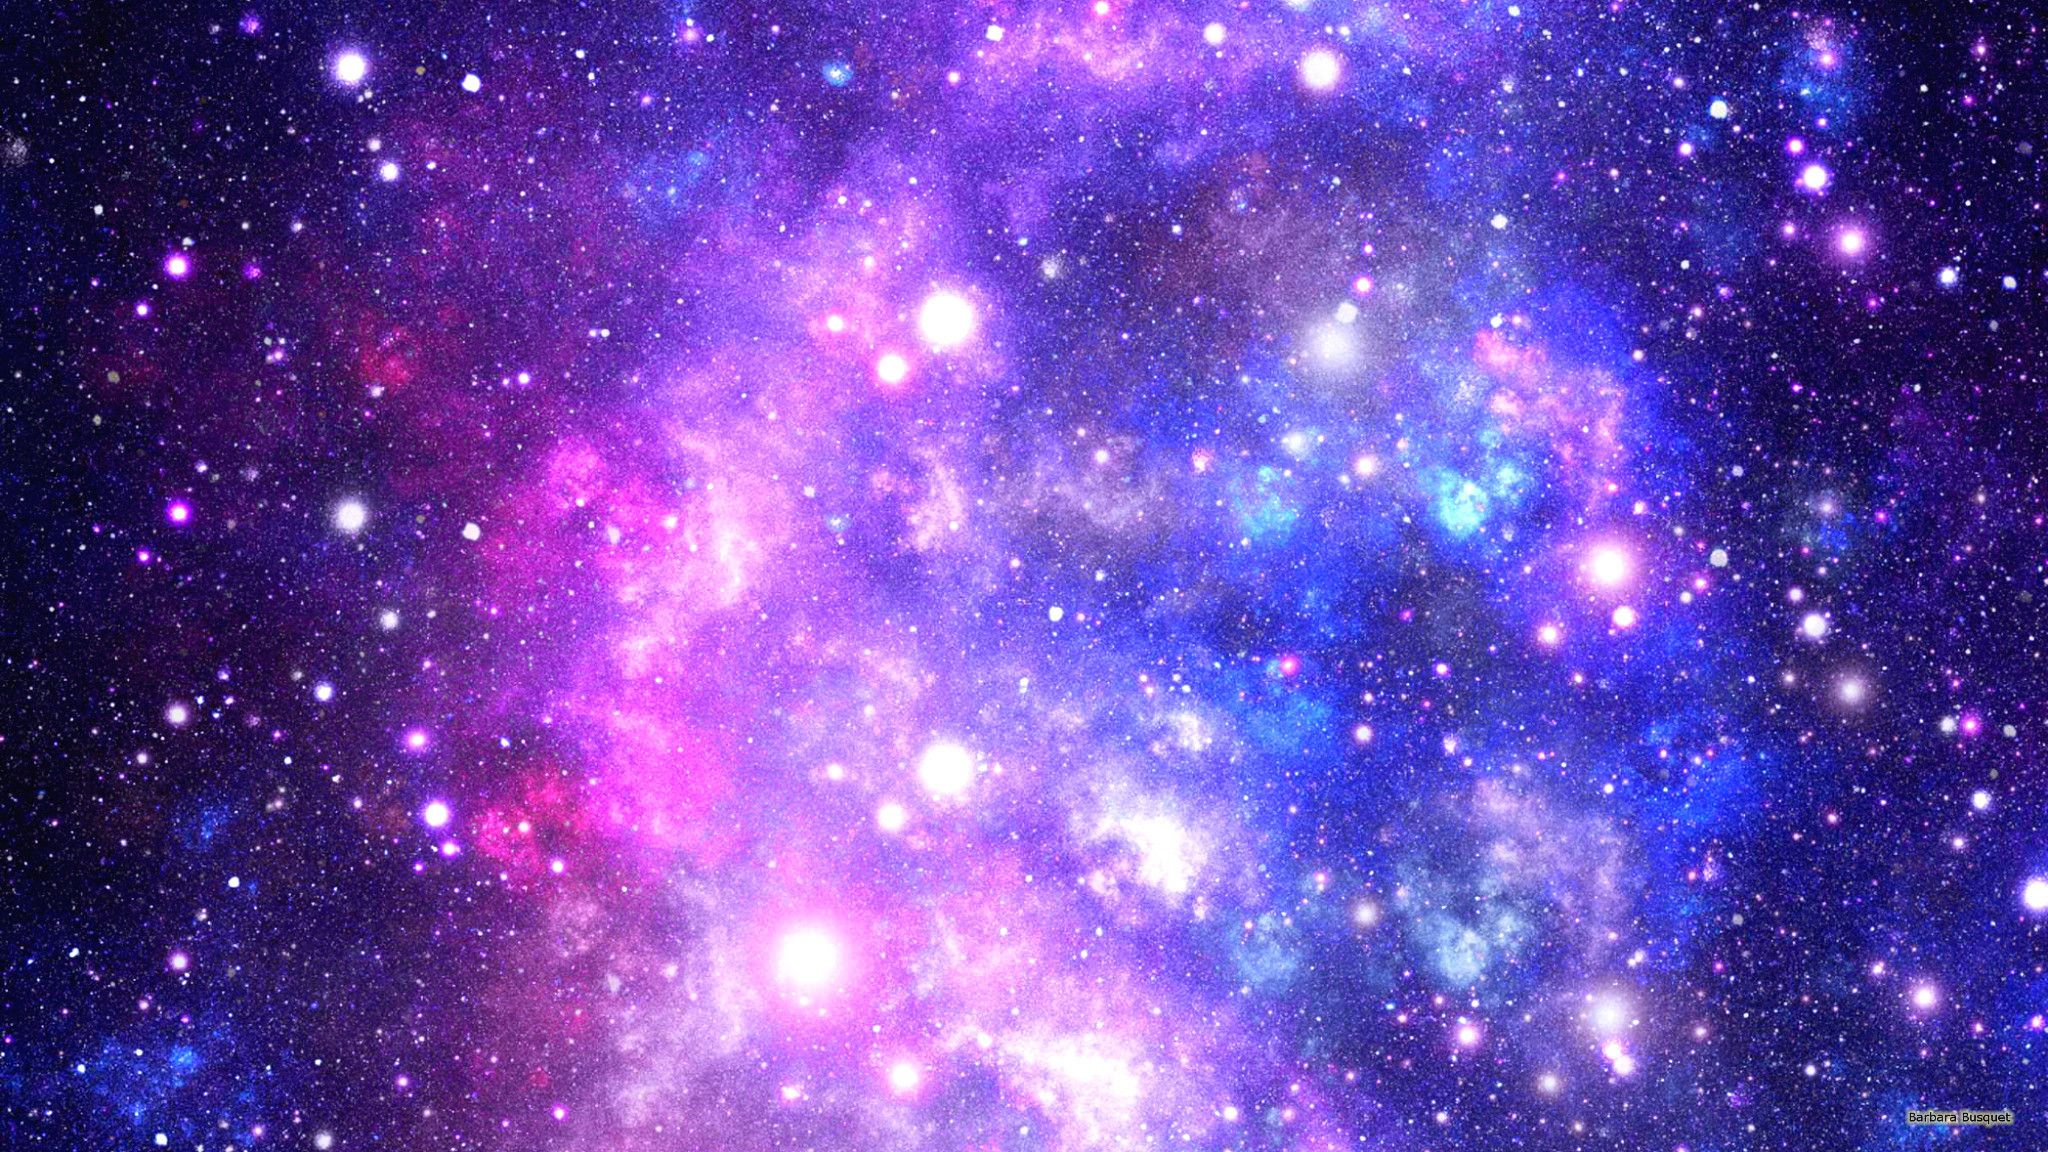 Galaxy Wallpaper With Colors And Stars 2048x1152 In 2019